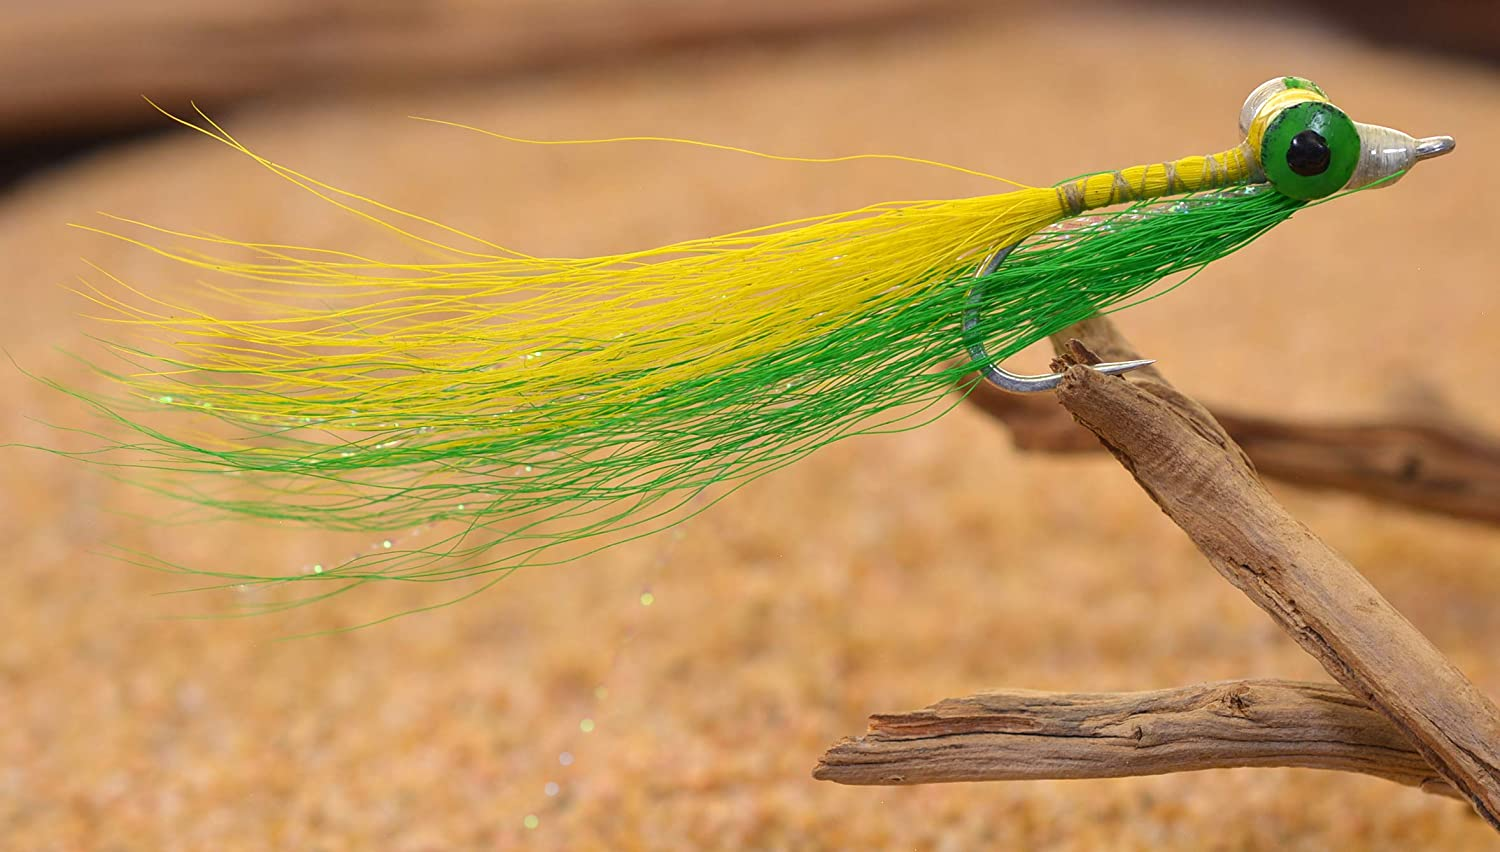 6 flies Clouser Minnow Black Red Fly Fishing Flies Bass, Trout, Redfish